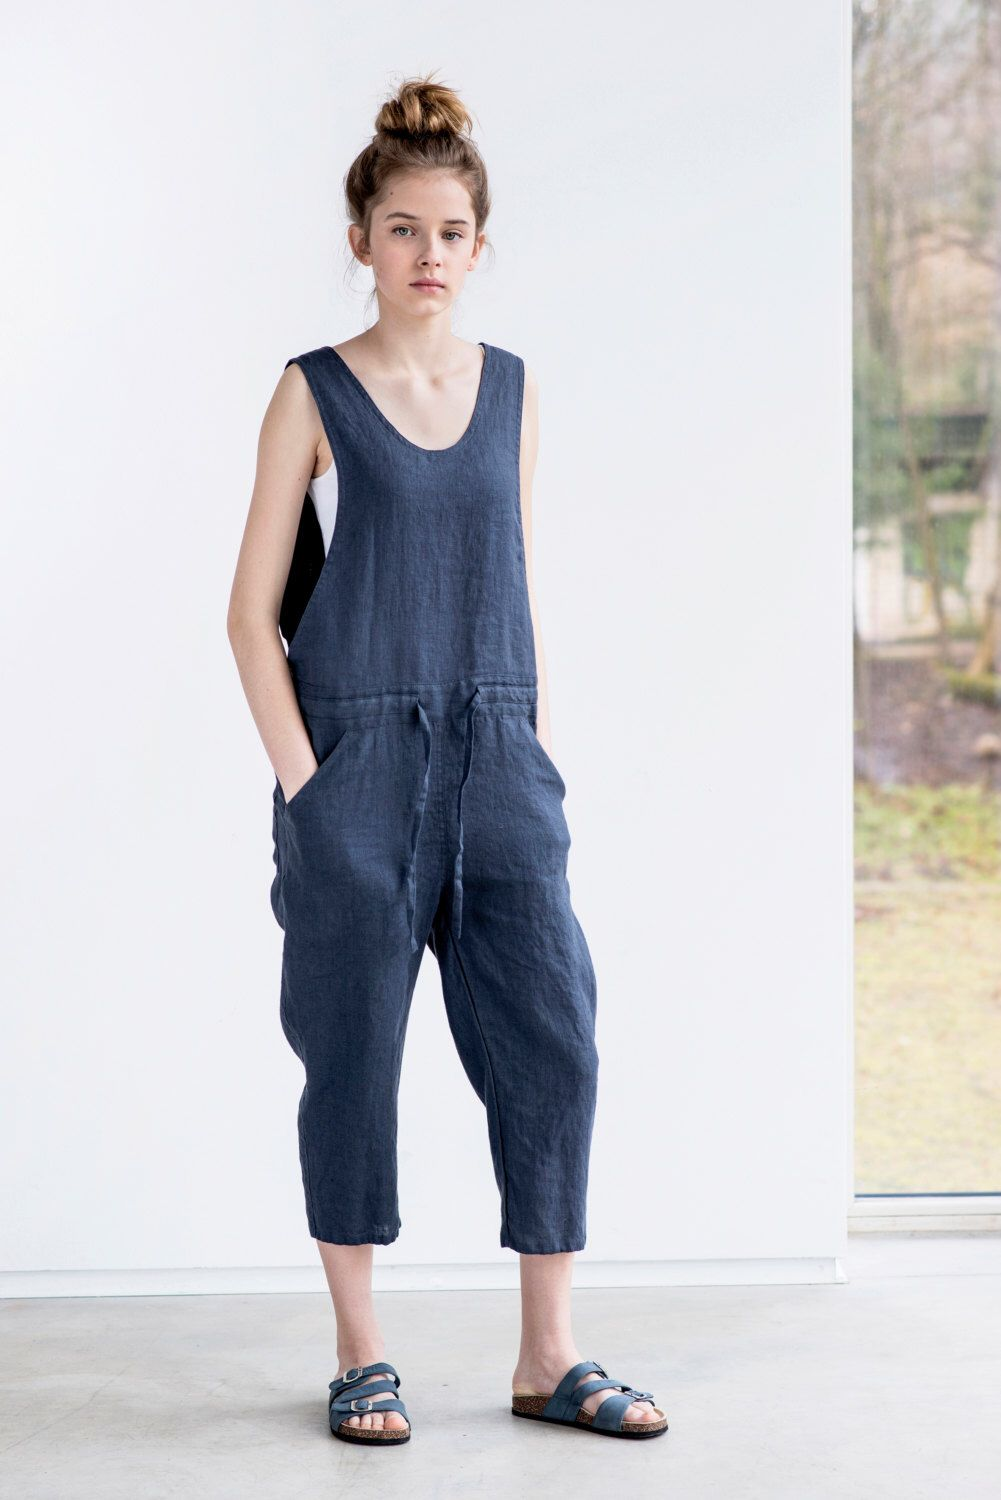 f3537fa3b67 Linen jumpsuit. Charcoal washed linen jumpsuit  linen overall by  notPERFECTLINEN on Etsy https